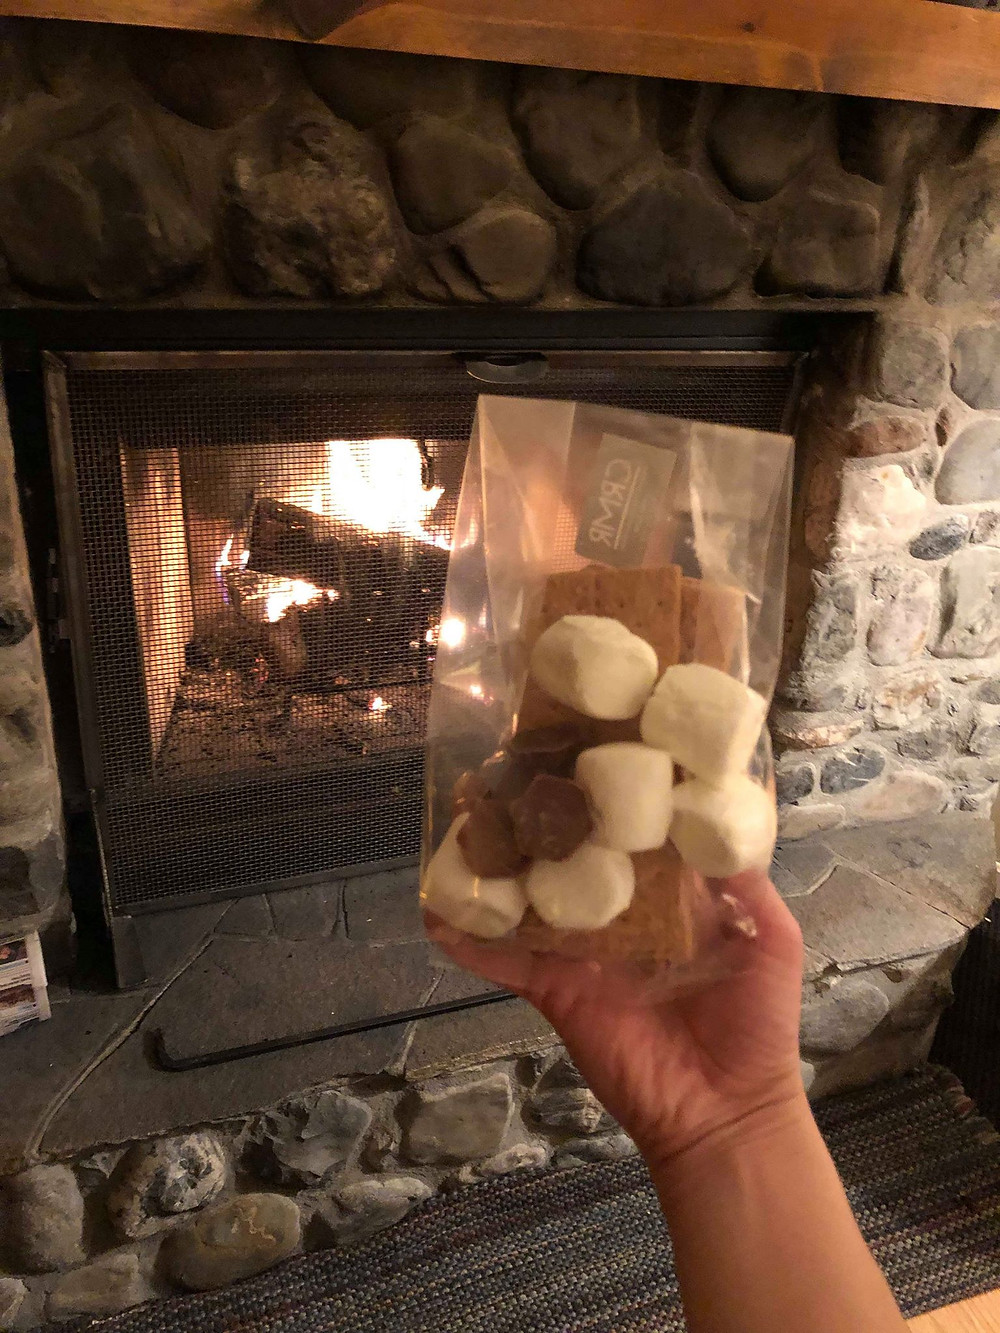 Canadian winter smores chocolate marshmallows by wood burning fireplace. winter travel blog activities.